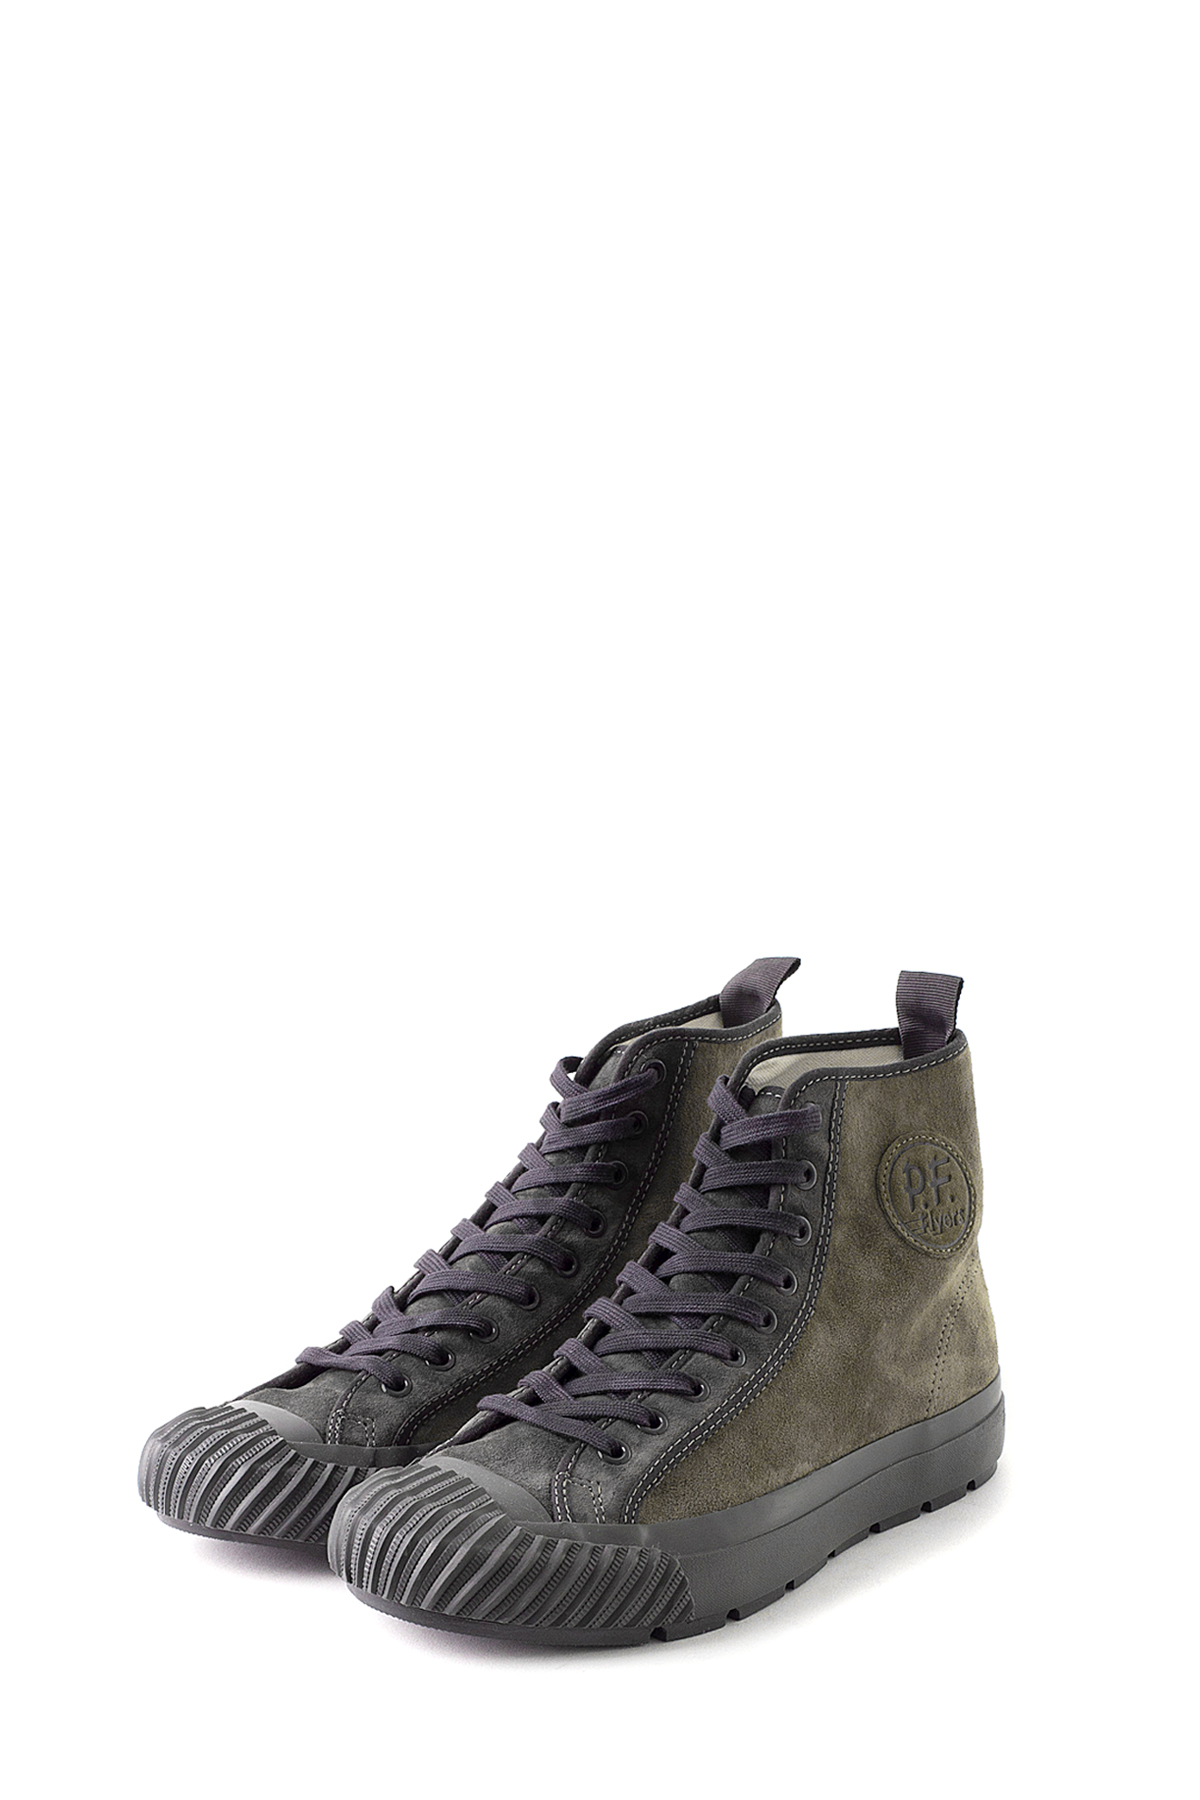 Eastlogue x PF FLYERS : Ground High (Khaki)